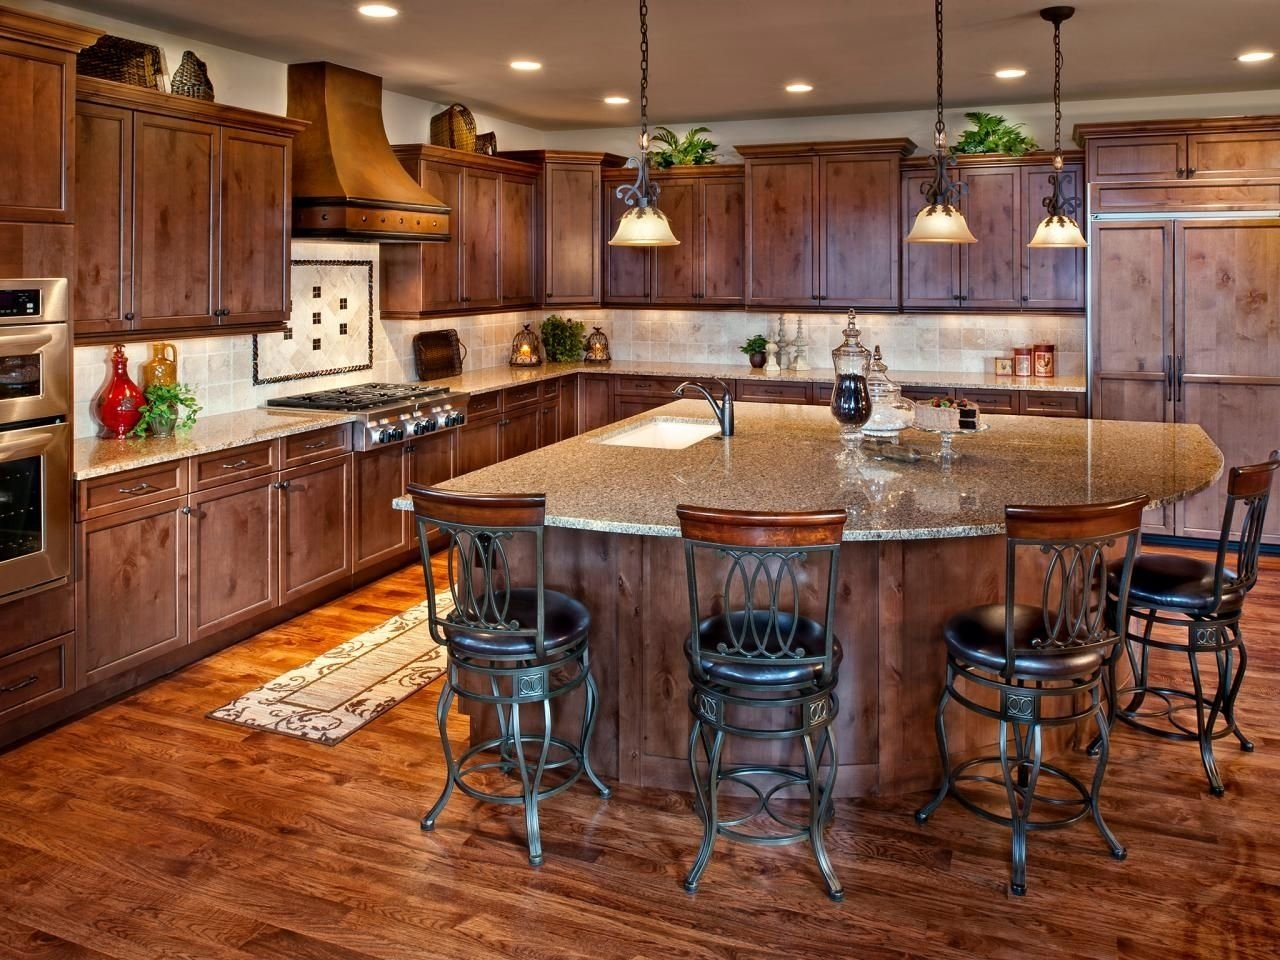 10 Fabulous Kitchen Design Ideas With Island beautiful pictures of kitchen islands hgtvs favorite design ideas 2021